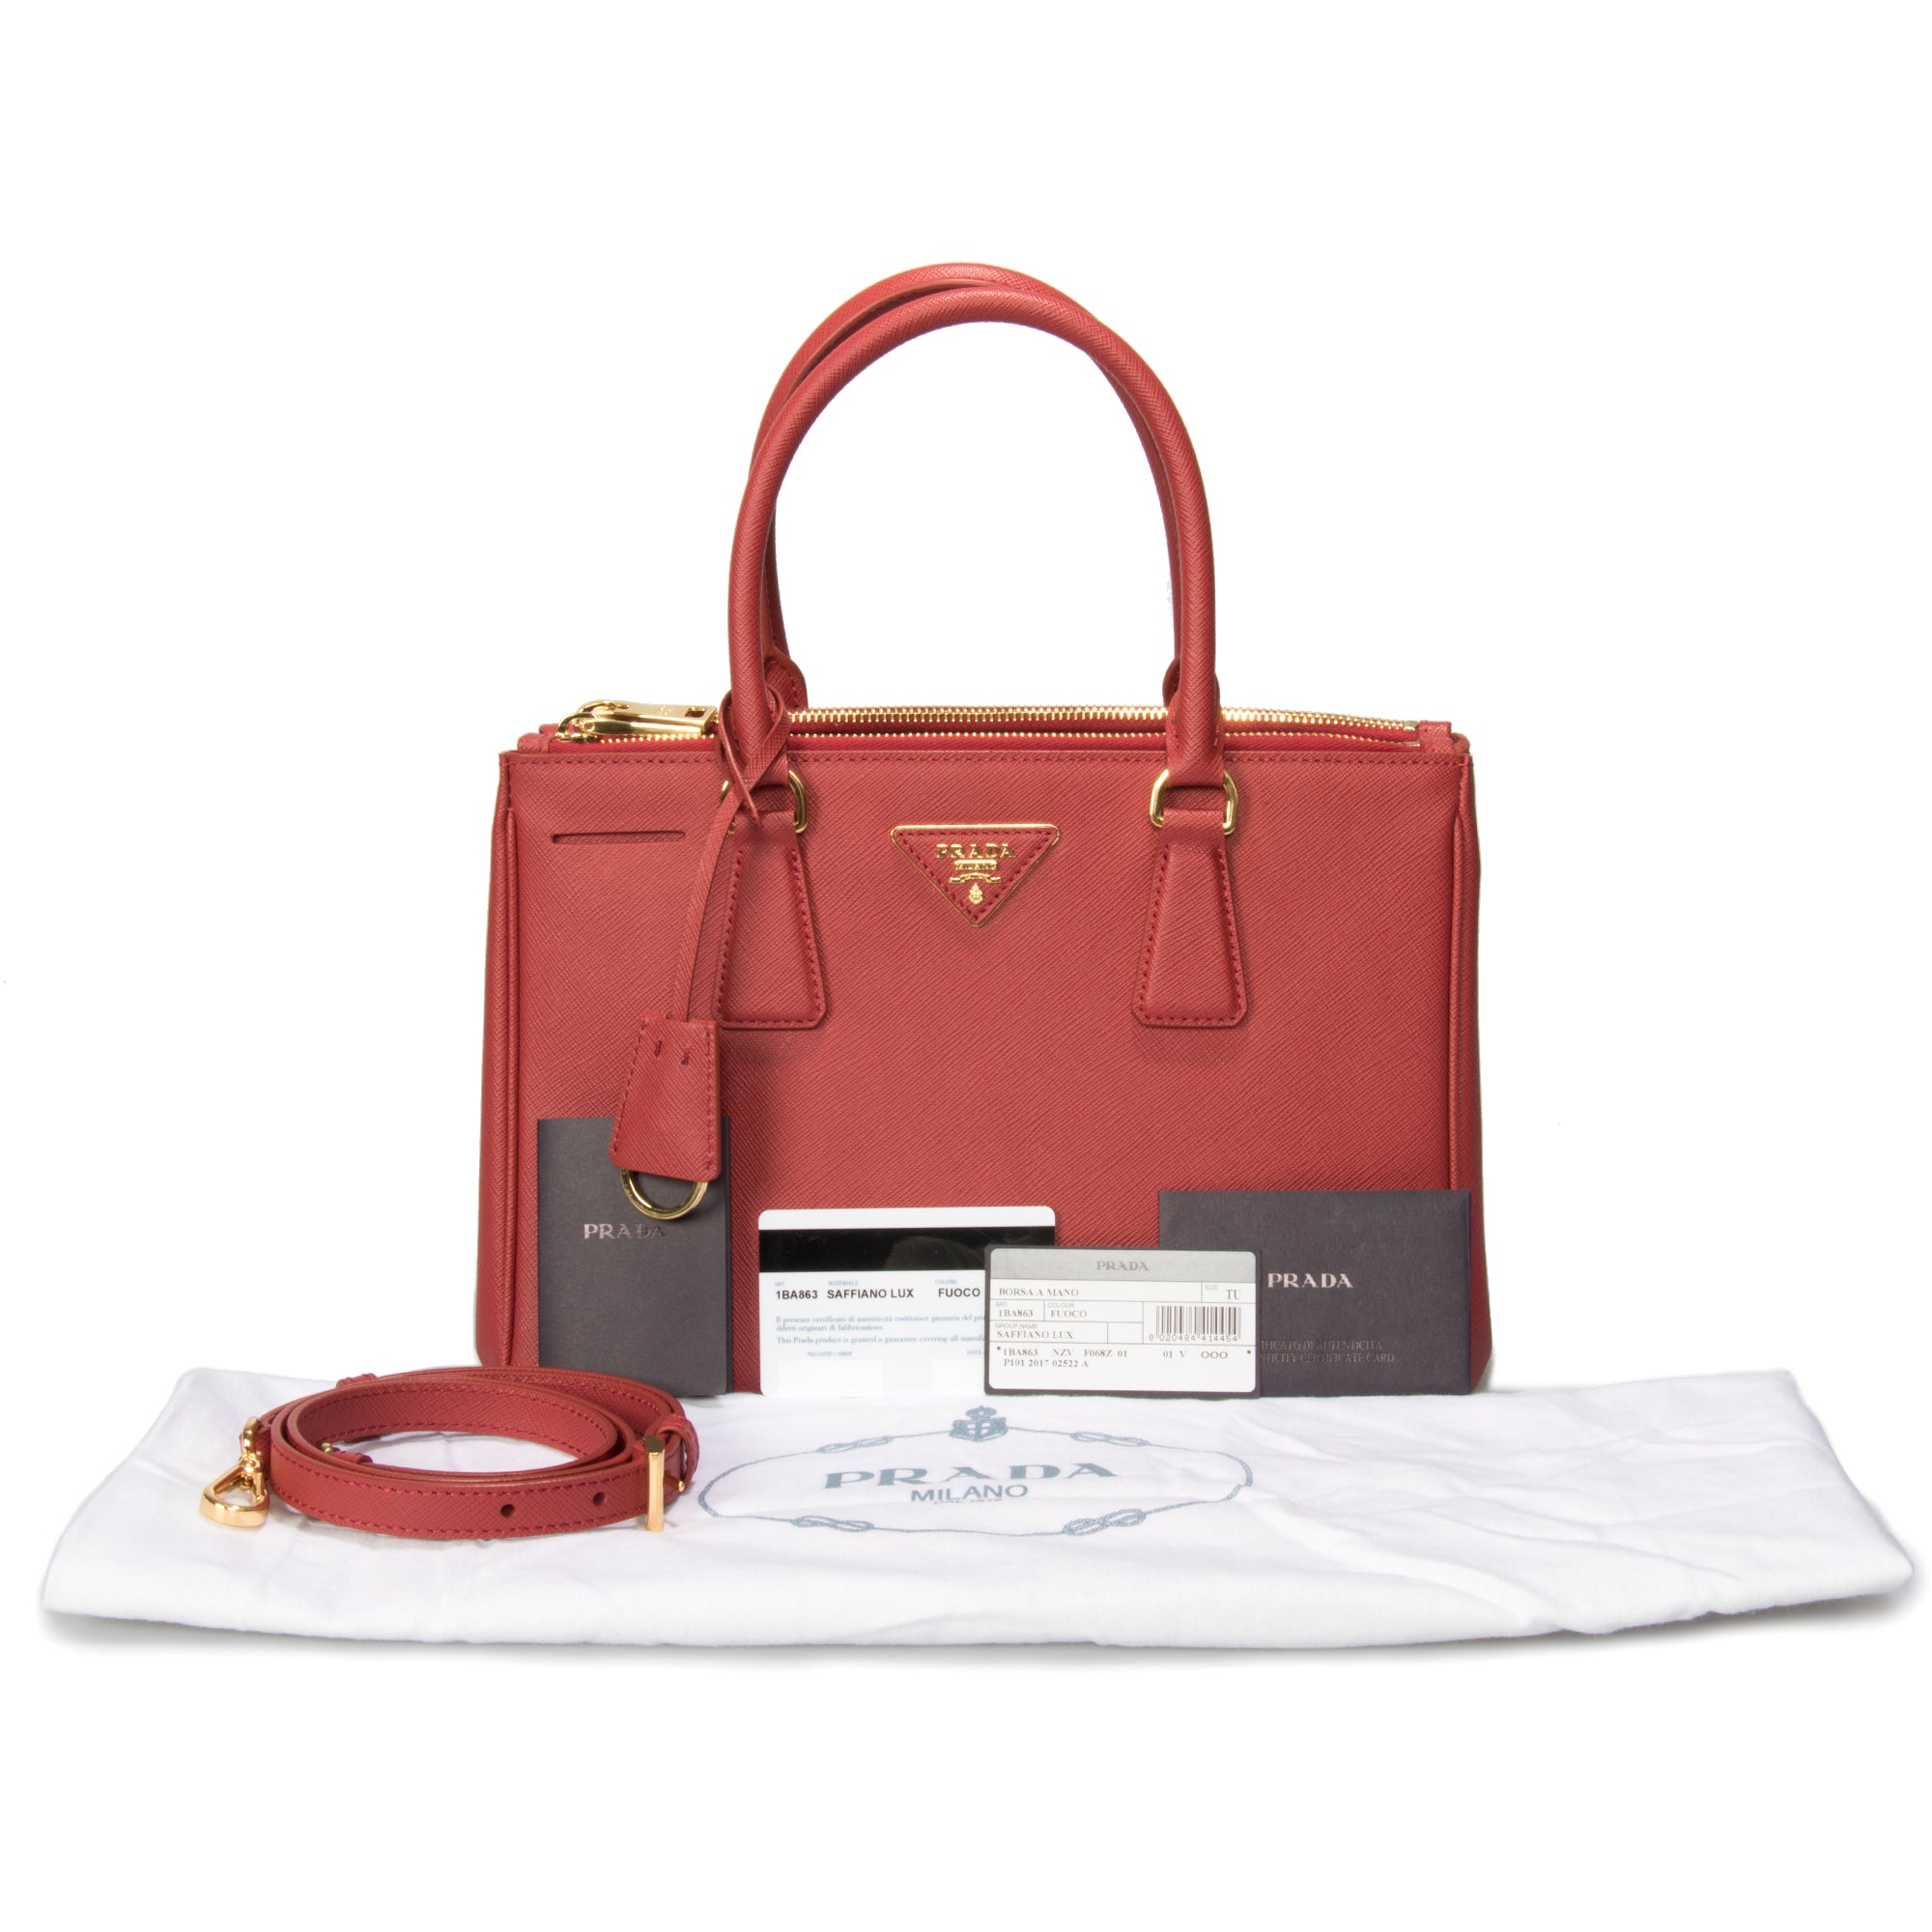 Prada Galleria Saffiano Small Leather Bag in Red